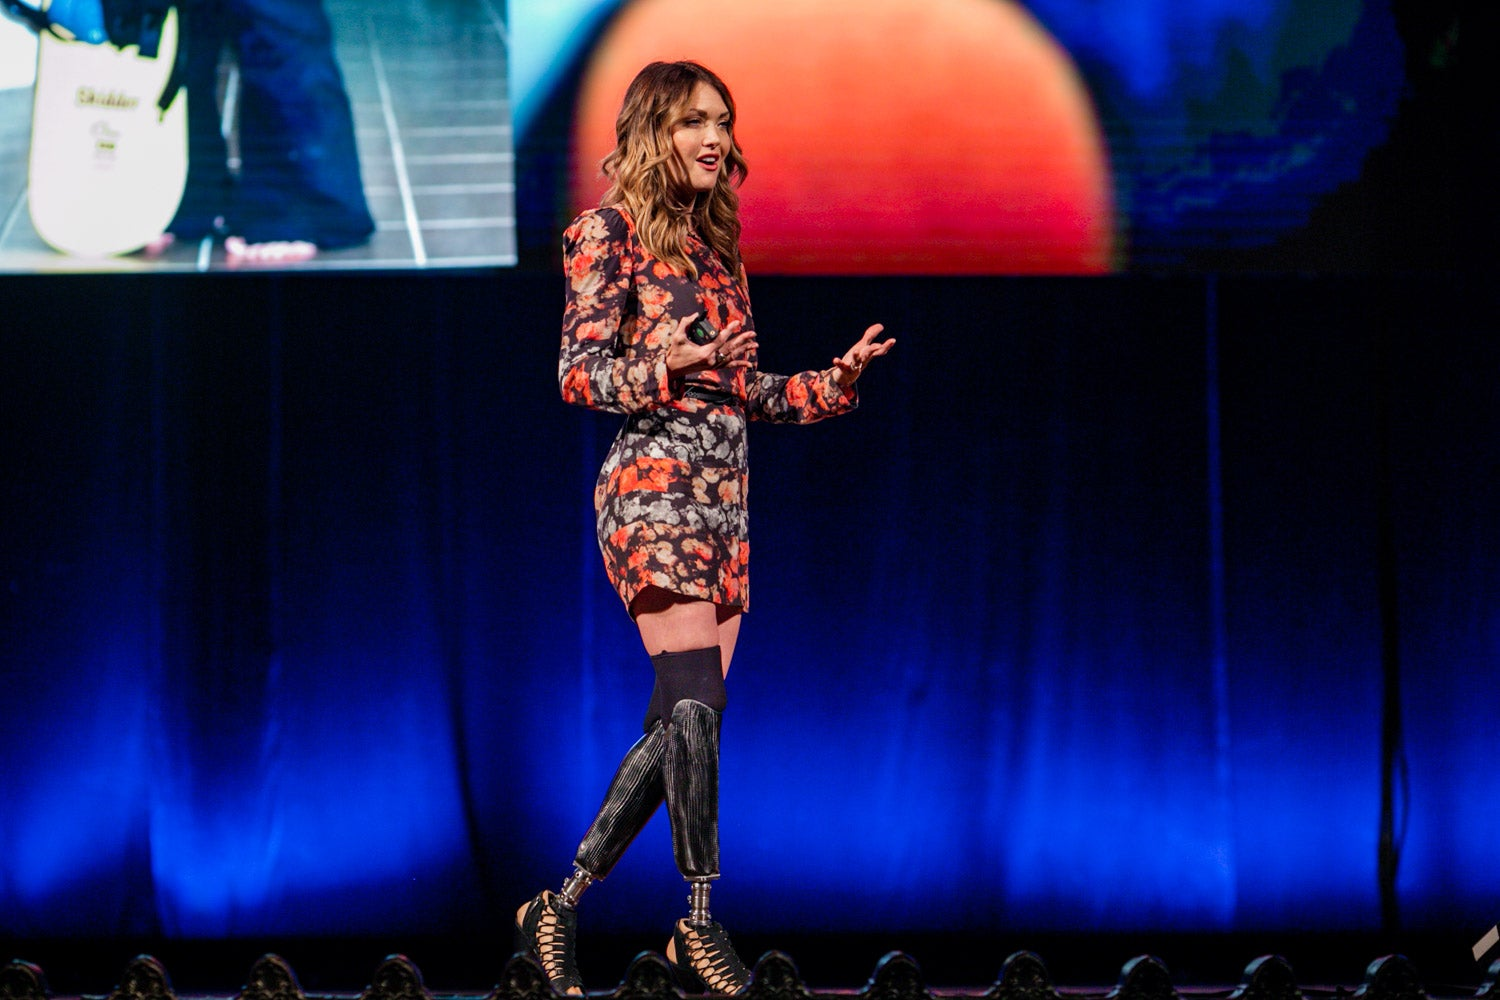 Amy Purdy takes the stage at the Summit of Greatness to talk about being extraordinary